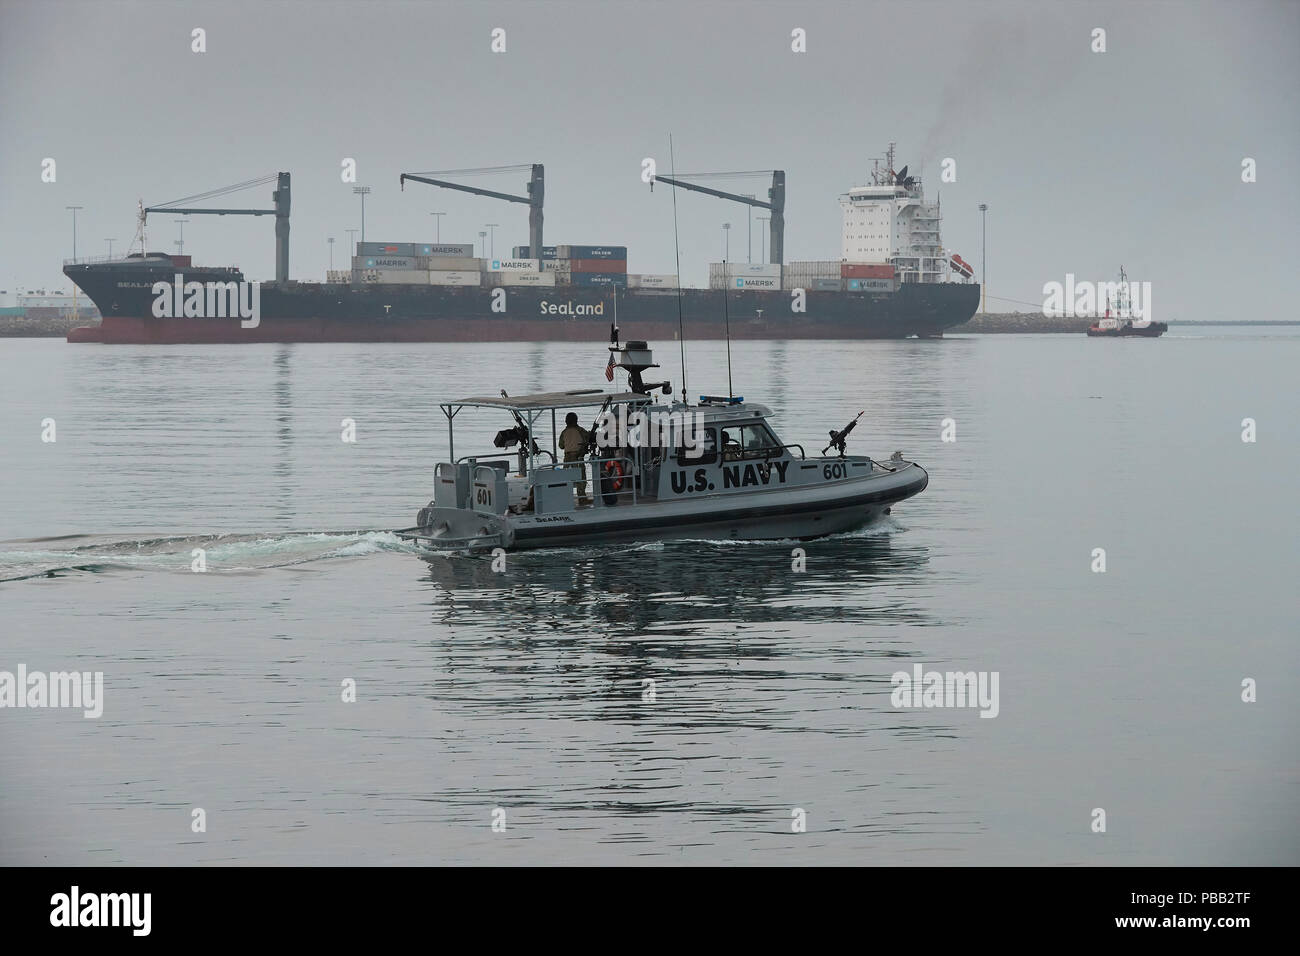 U.S. Navy Patrol Boat, Patrols The Port Of Los Angeles, An Arriving SeaLand Container Ship Behind. California, USA. - Stock Image